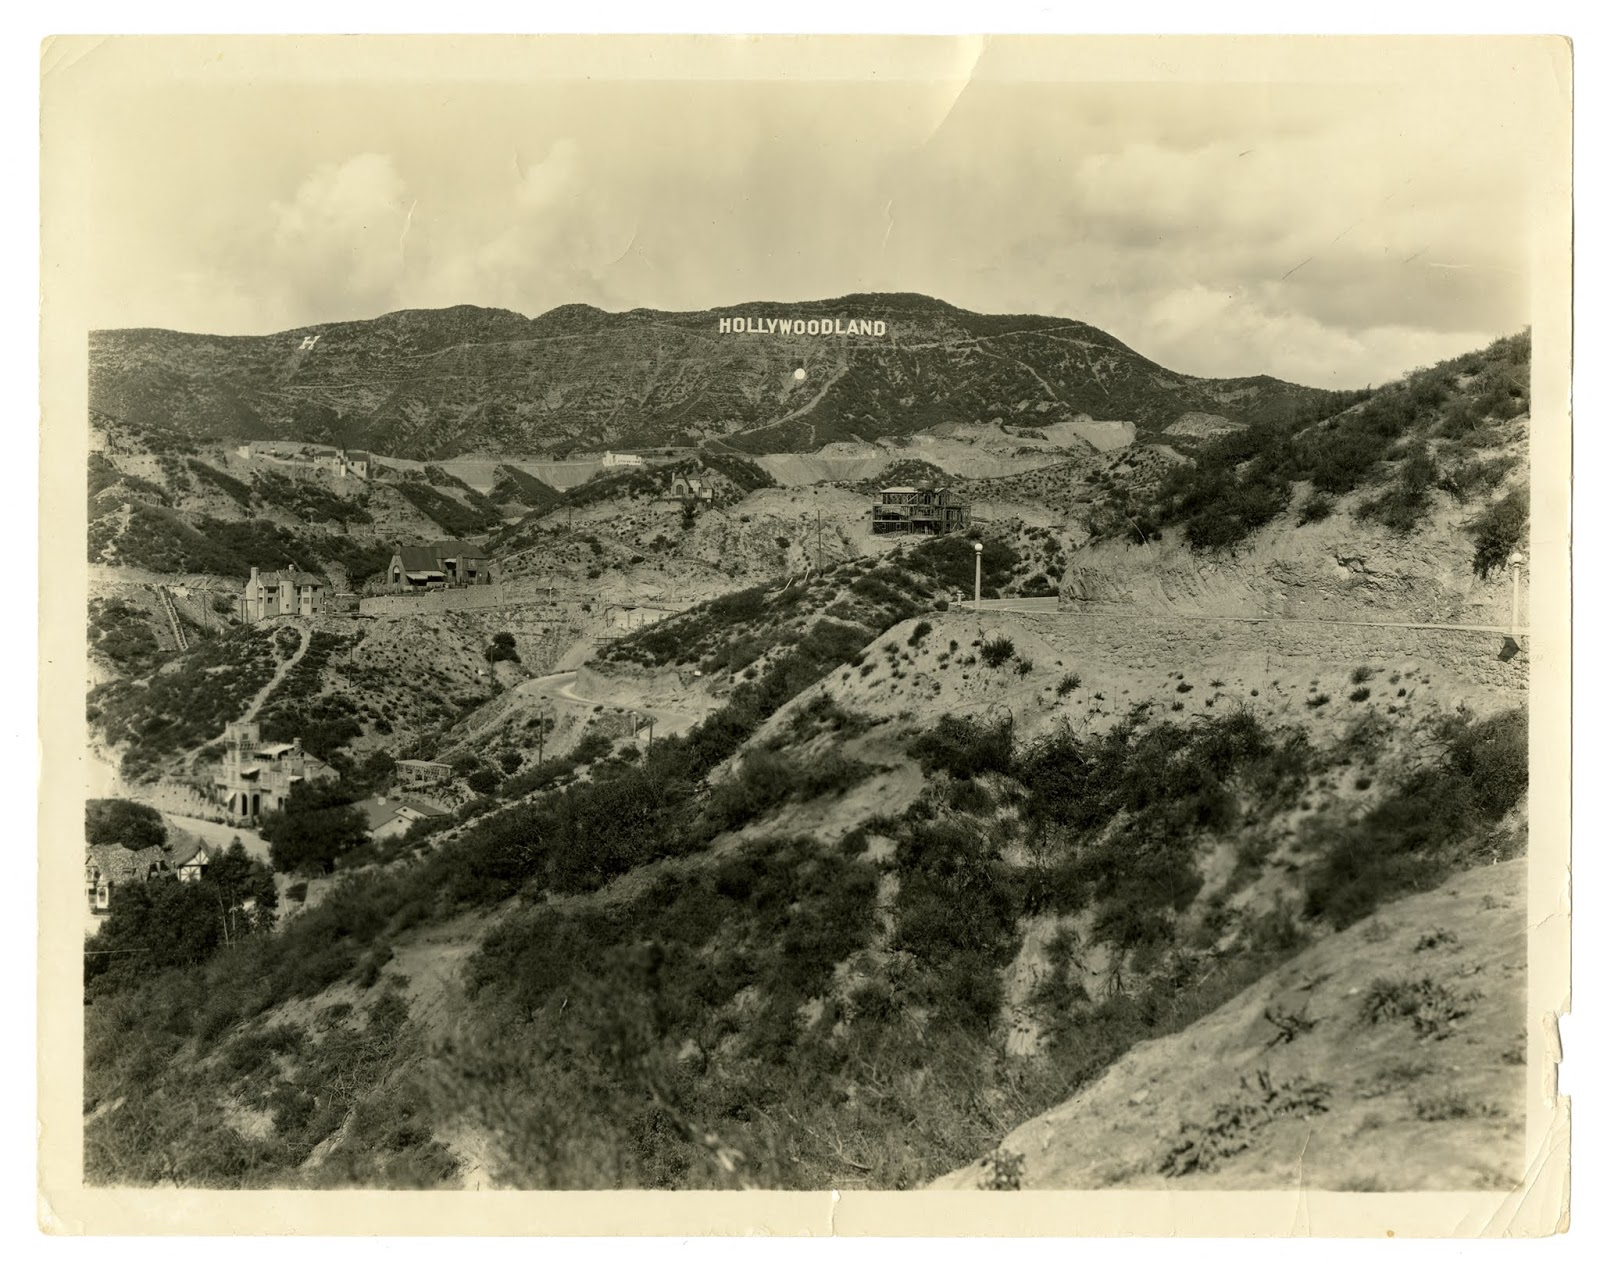 california historical society looking at hollywoodland and how